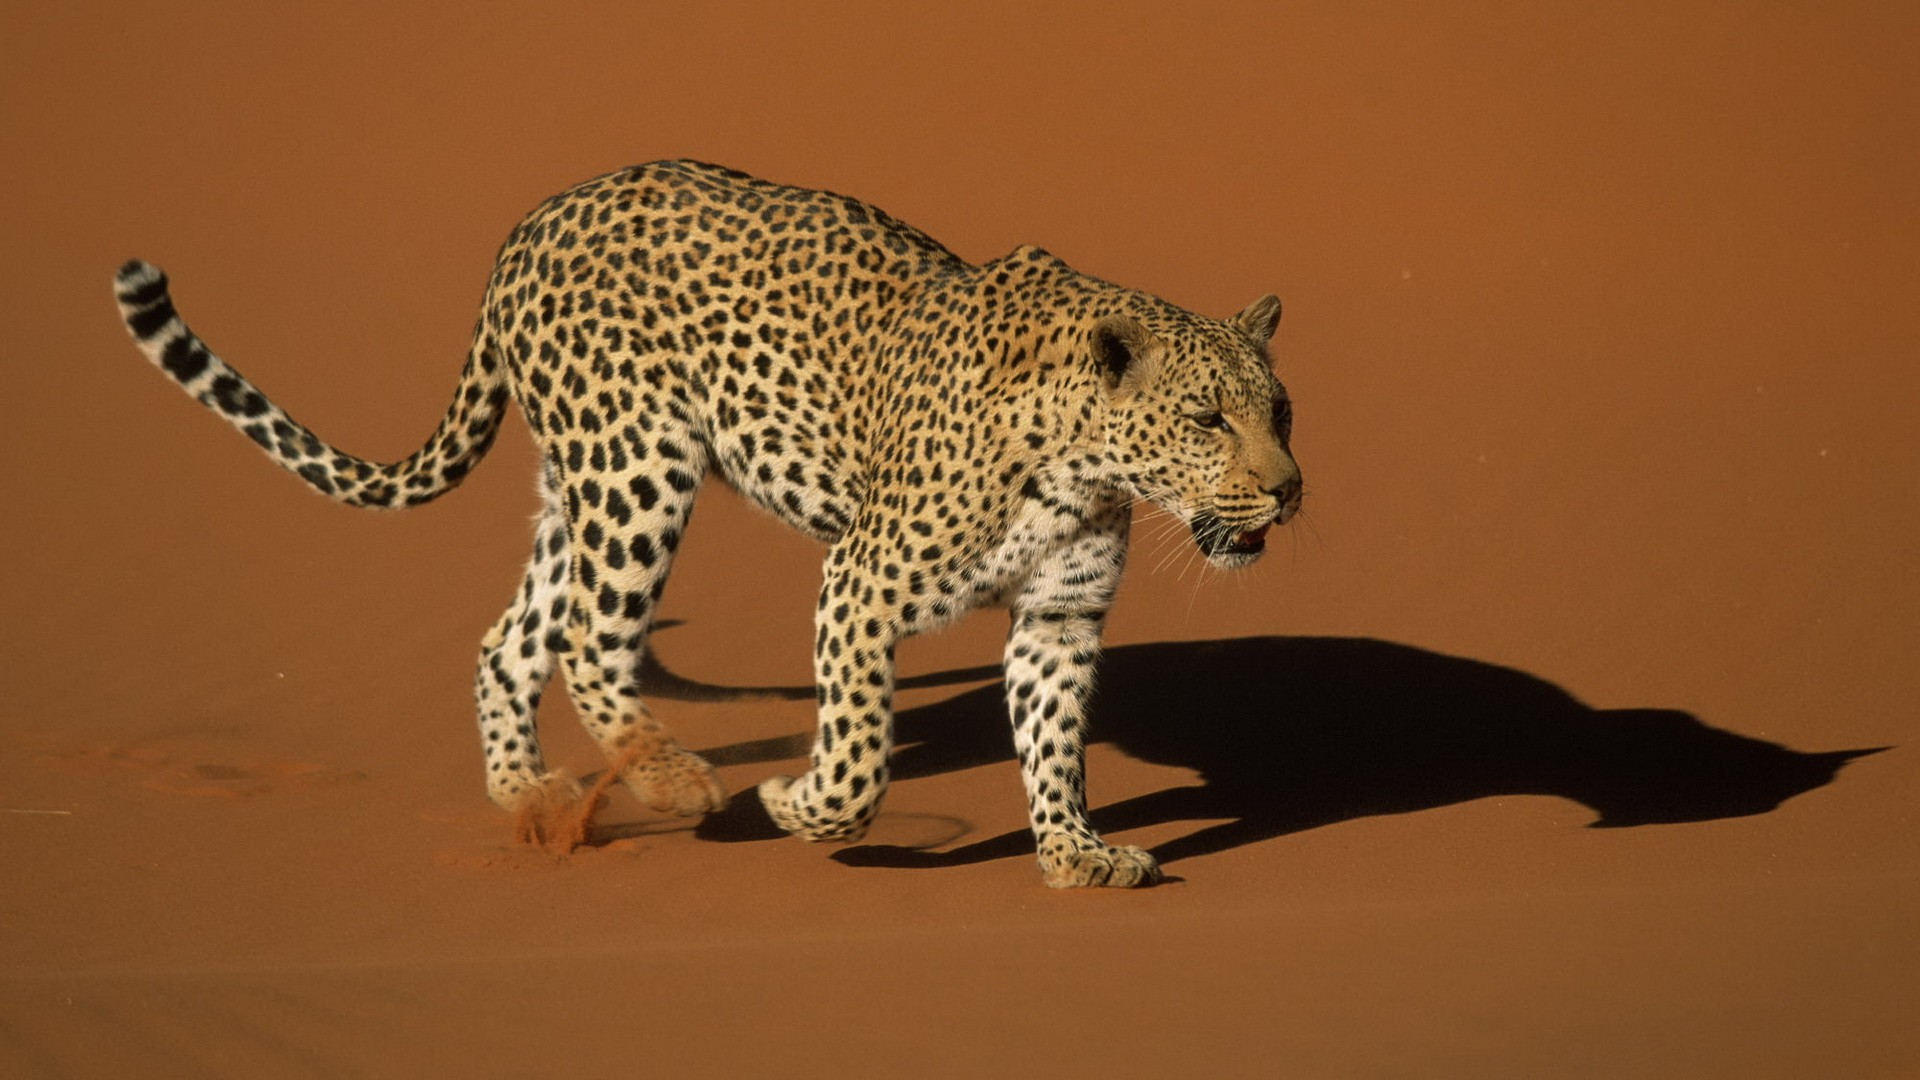 Sand Animals Namibia Leopards National Park Wallpaper